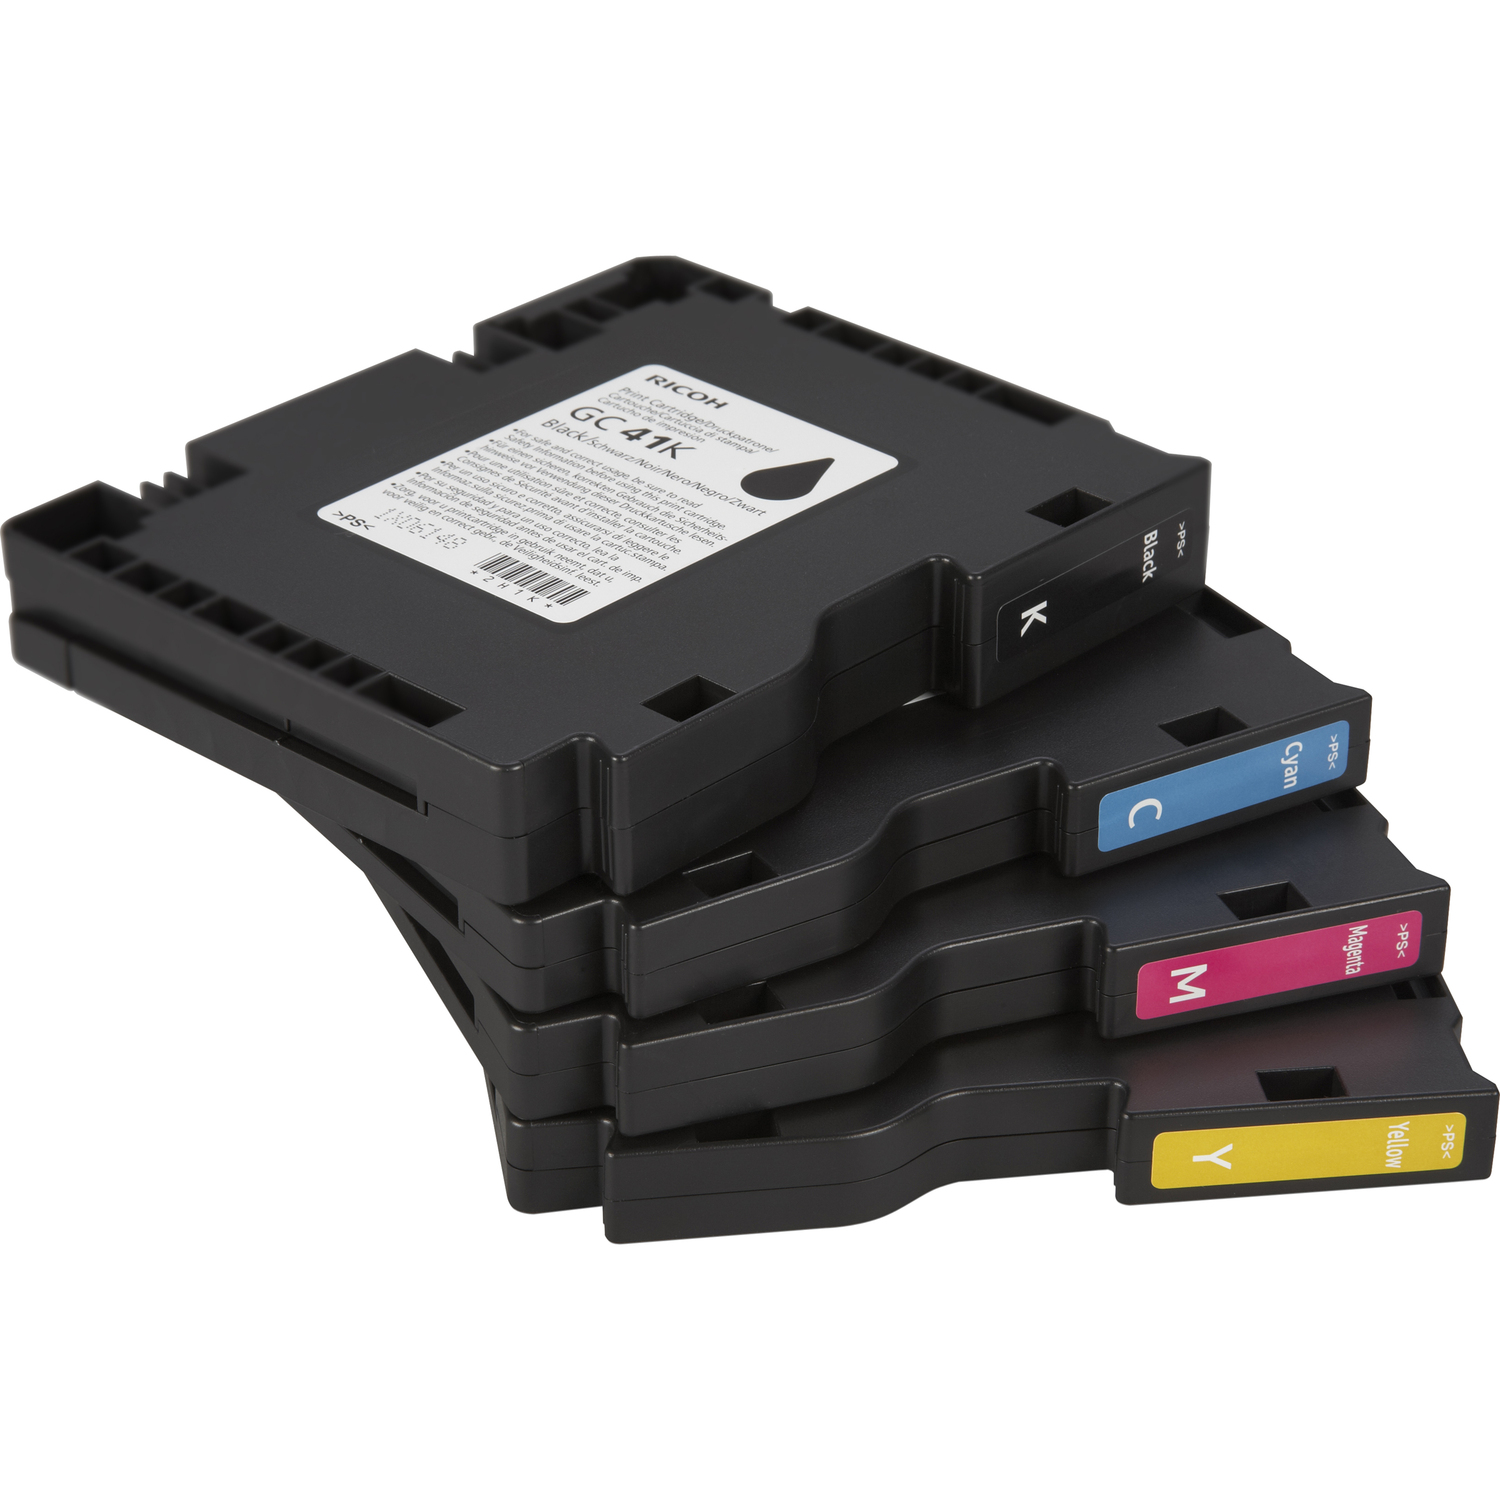 Ricoh GC 41K Ink Cartridge - Black